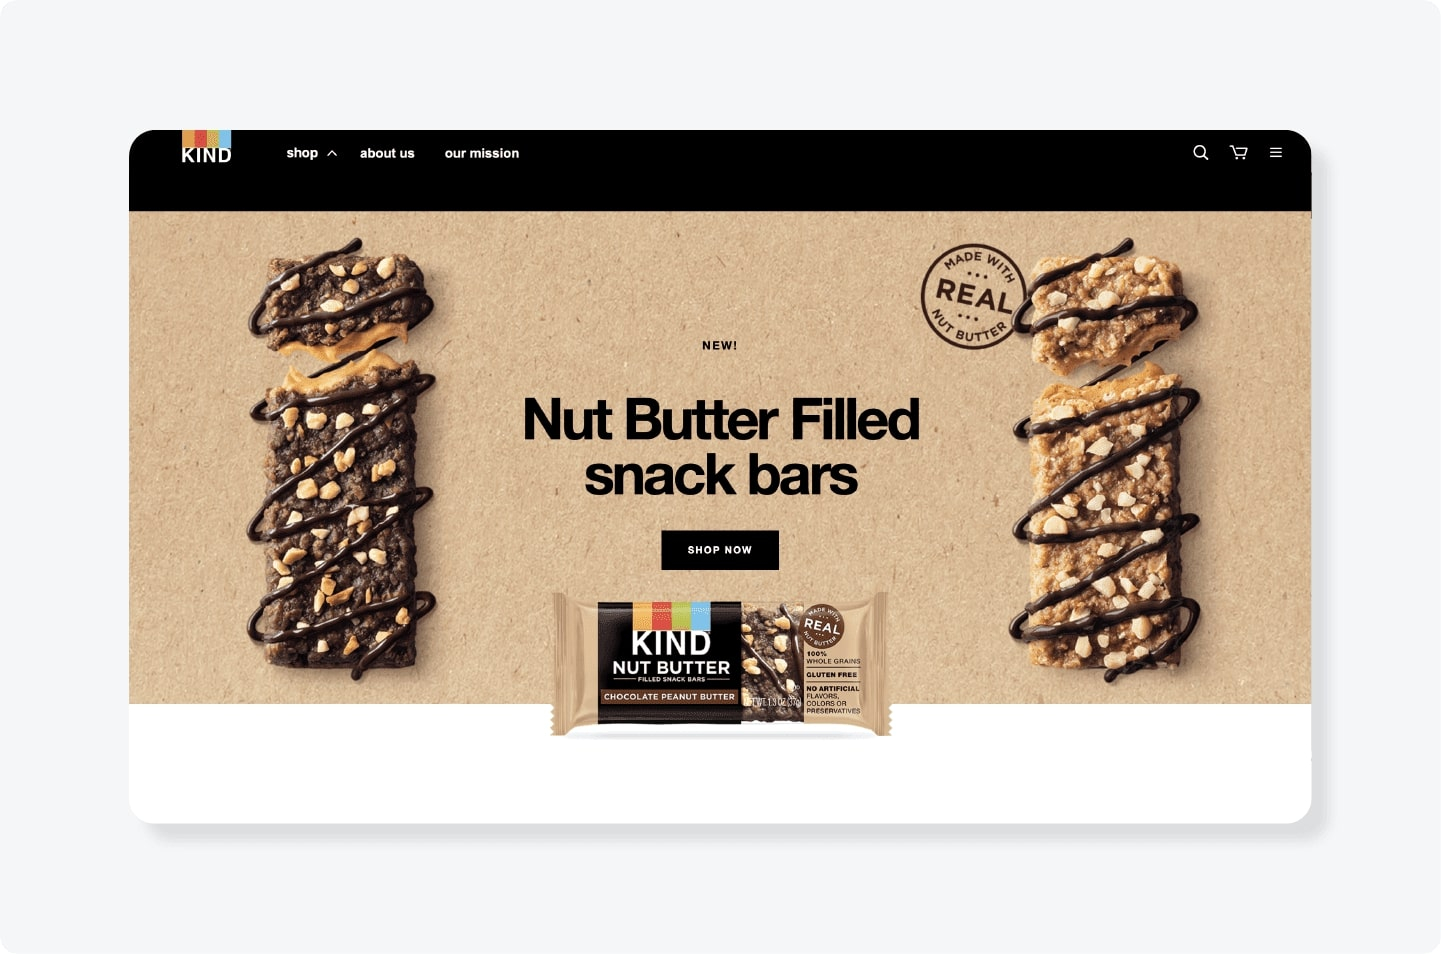 Kind Nut butter bars advertisement